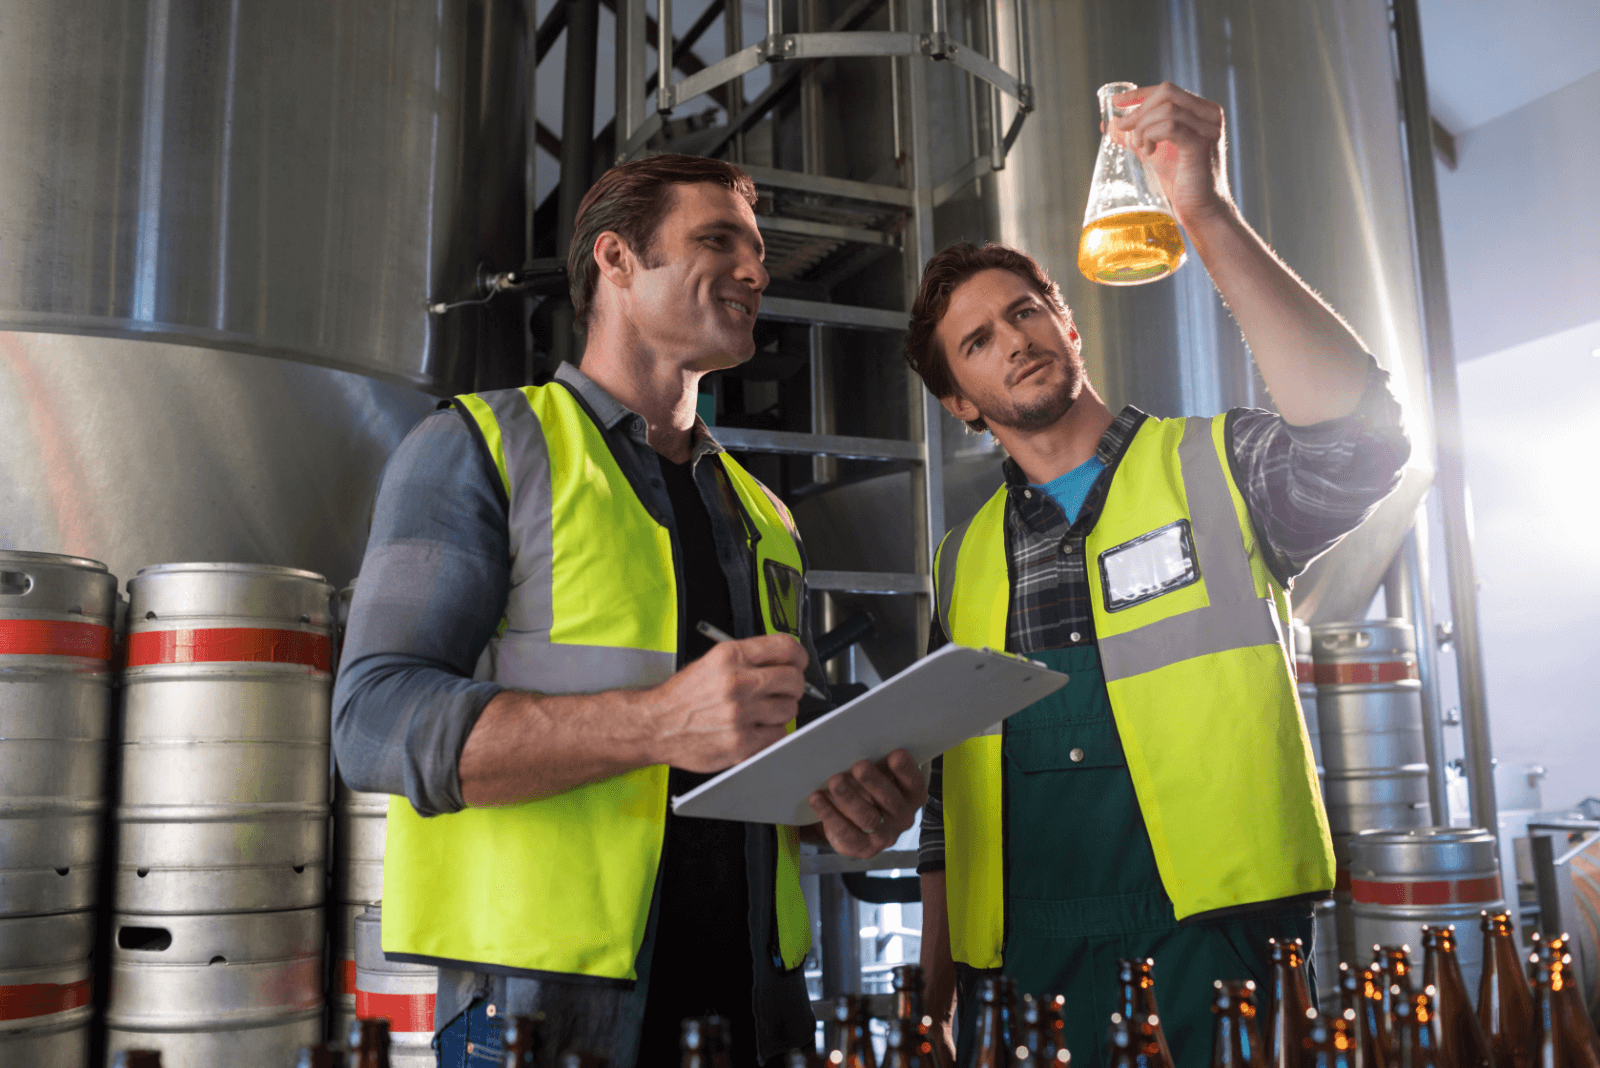 A complete guide to Health & Safety for Craft Breweries and Distilleries - Kiri Align